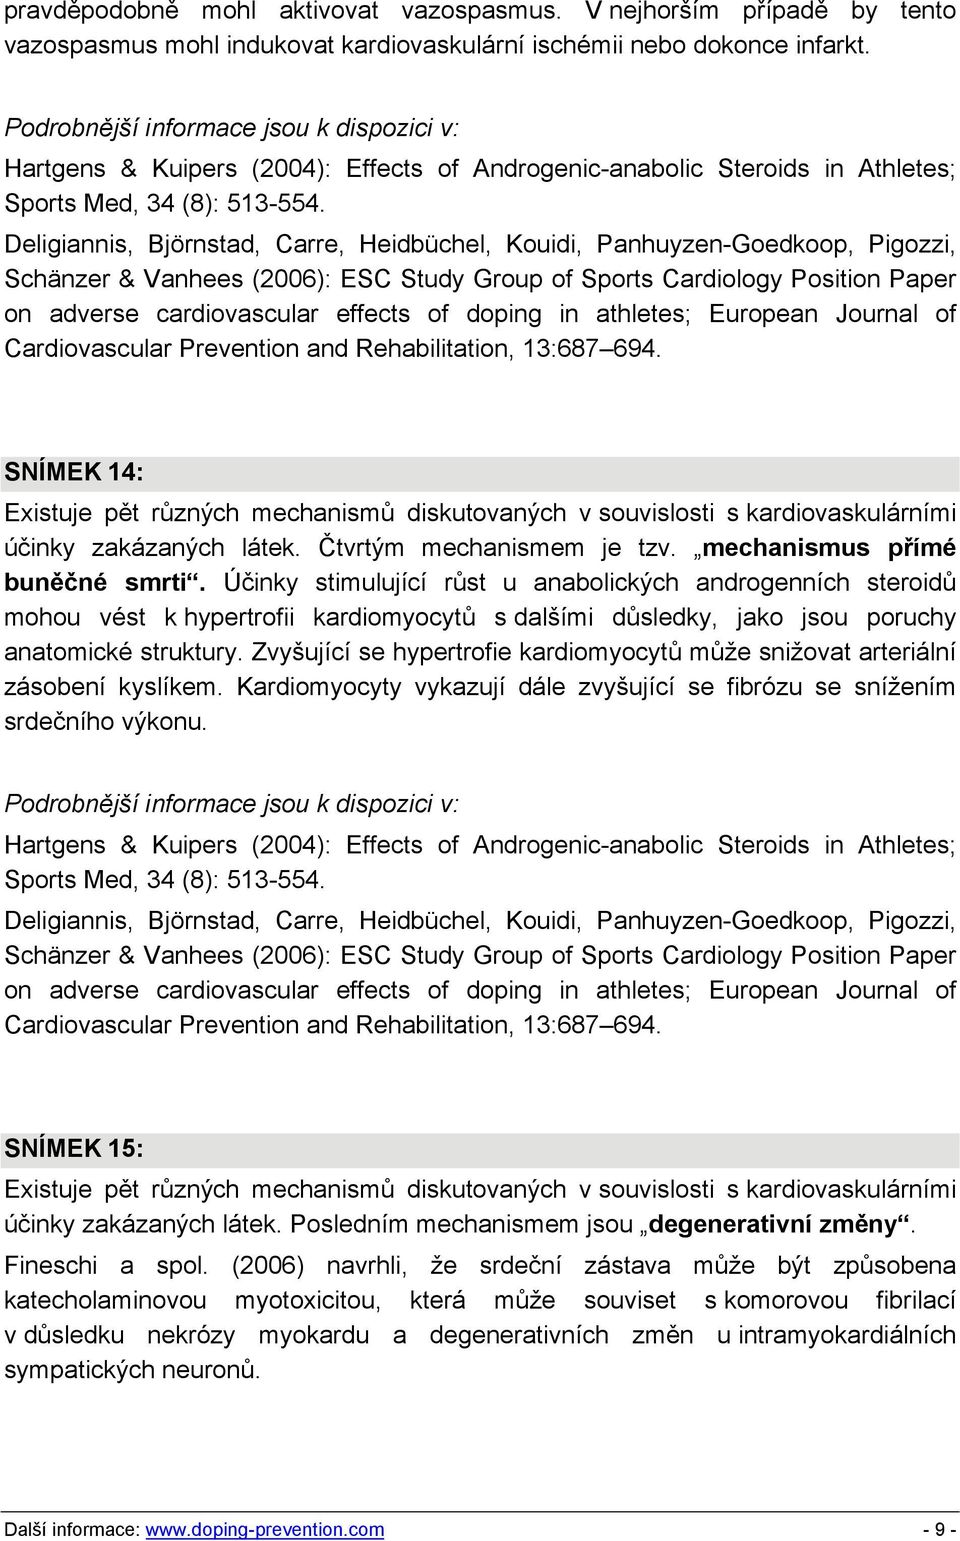 Deligiannis, Björnstad, Carre, Heidbüchel, Kouidi, Panhuyzen-Goedkoop, Pigozzi, Schänzer & Vanhees (2006): ESC Study Group of Sports Cardiology Position Paper on adverse cardiovascular effects of